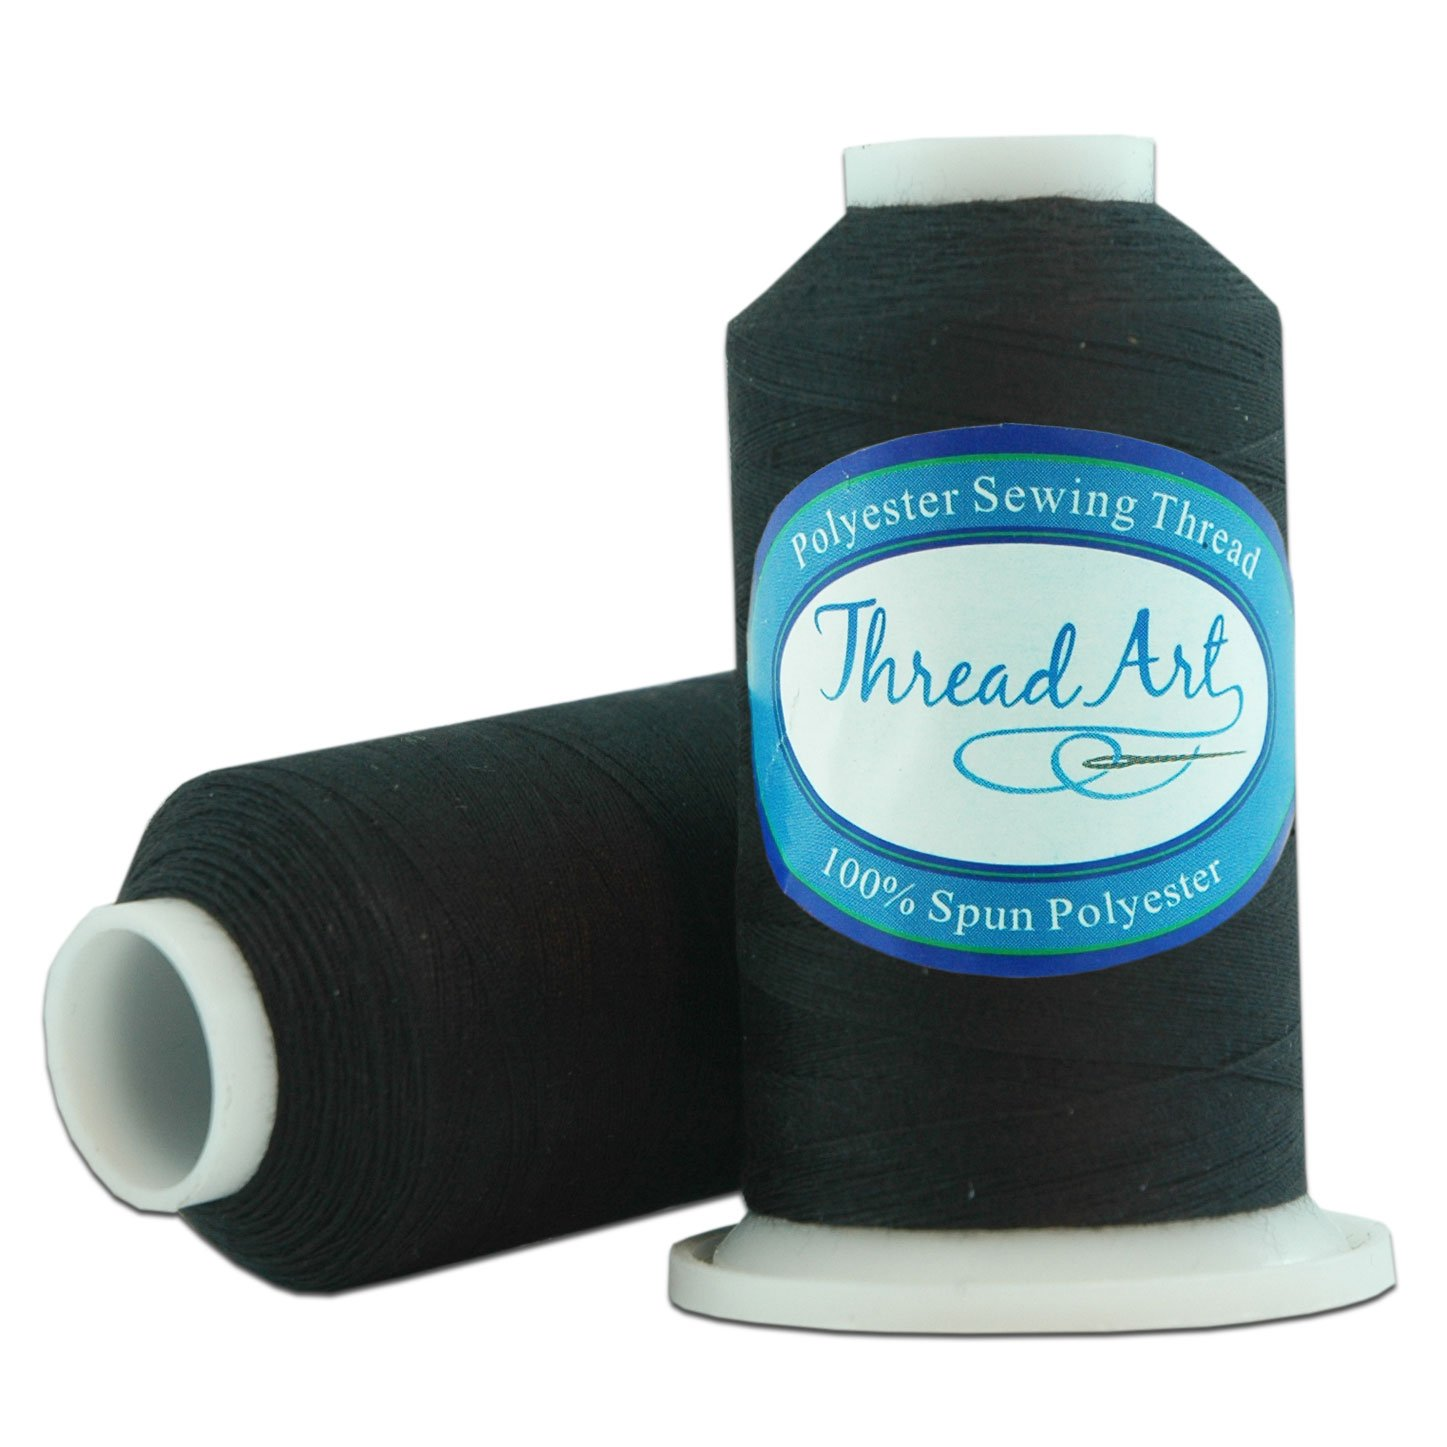 Polyester Sewing Thread - 600m - Color 102